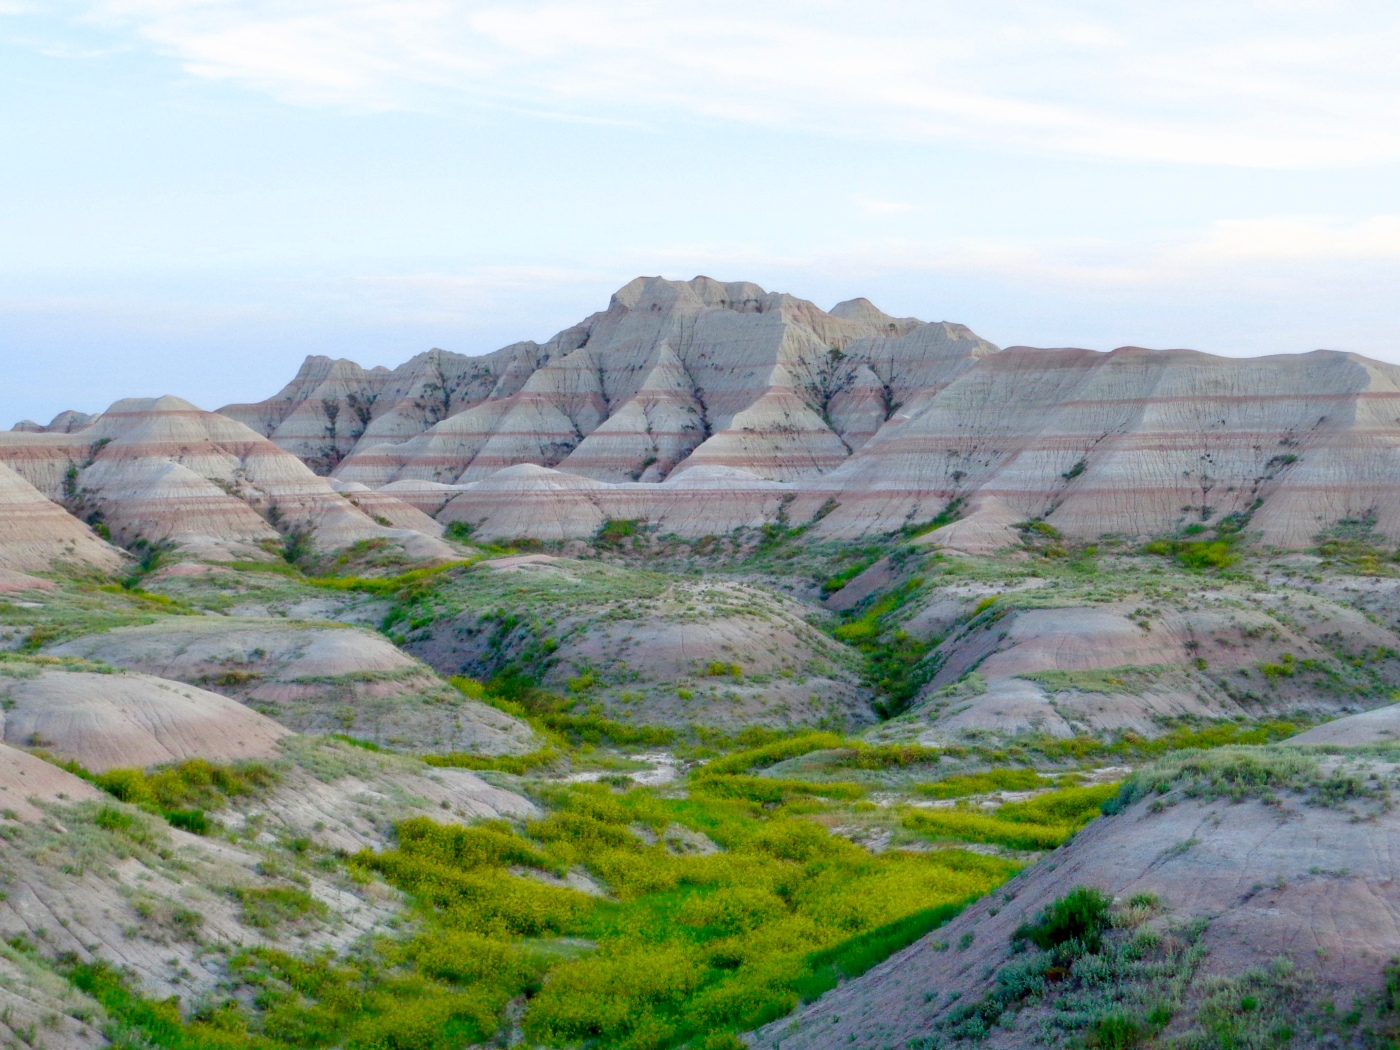 Sunset in Badlands National Park in South Dakota